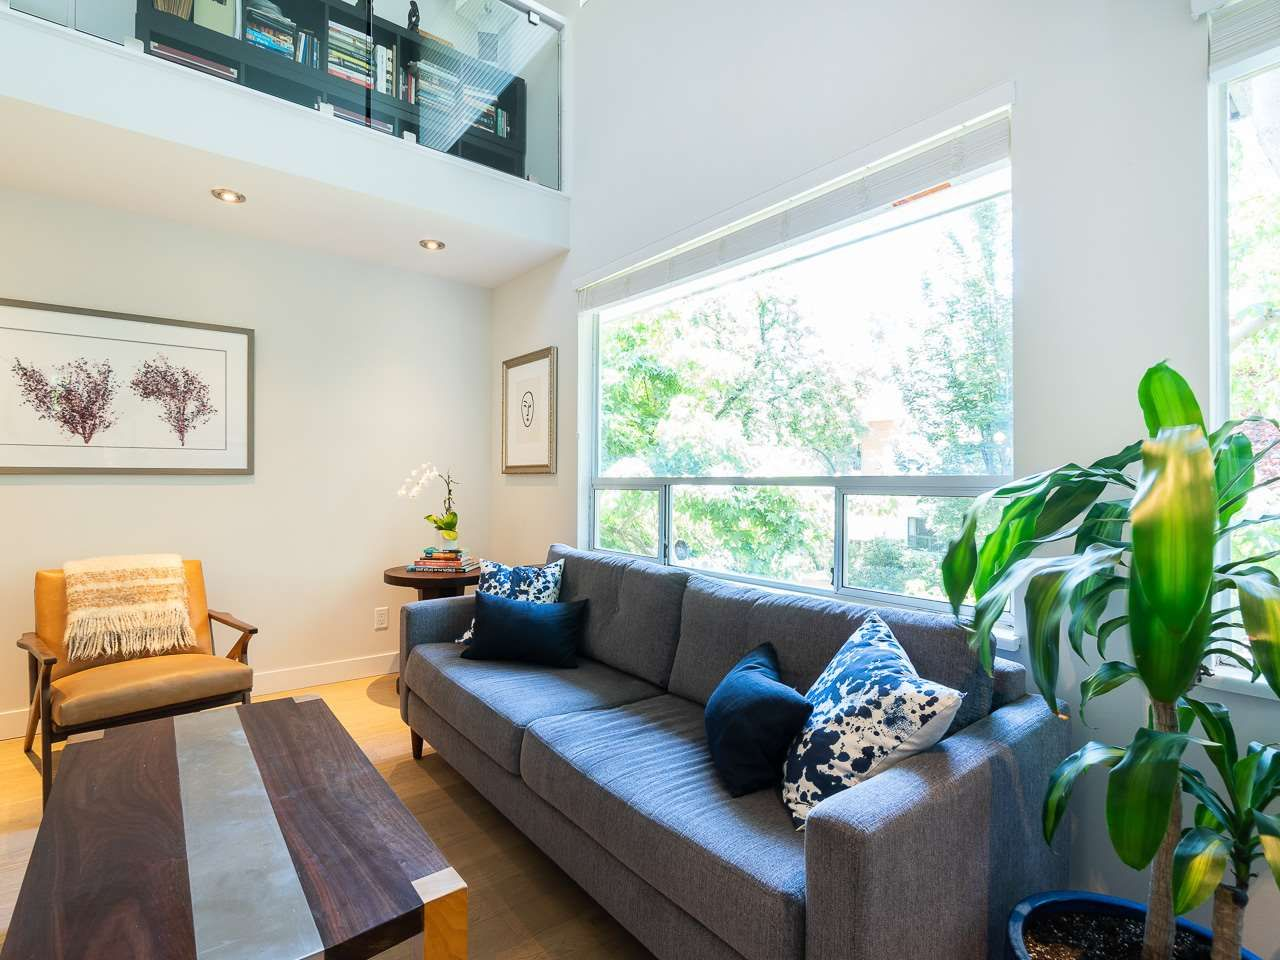 Main Photo: 412 1345 COMOX STREET in Vancouver: West End VW Condo for sale (Vancouver West)  : MLS®# R2286410